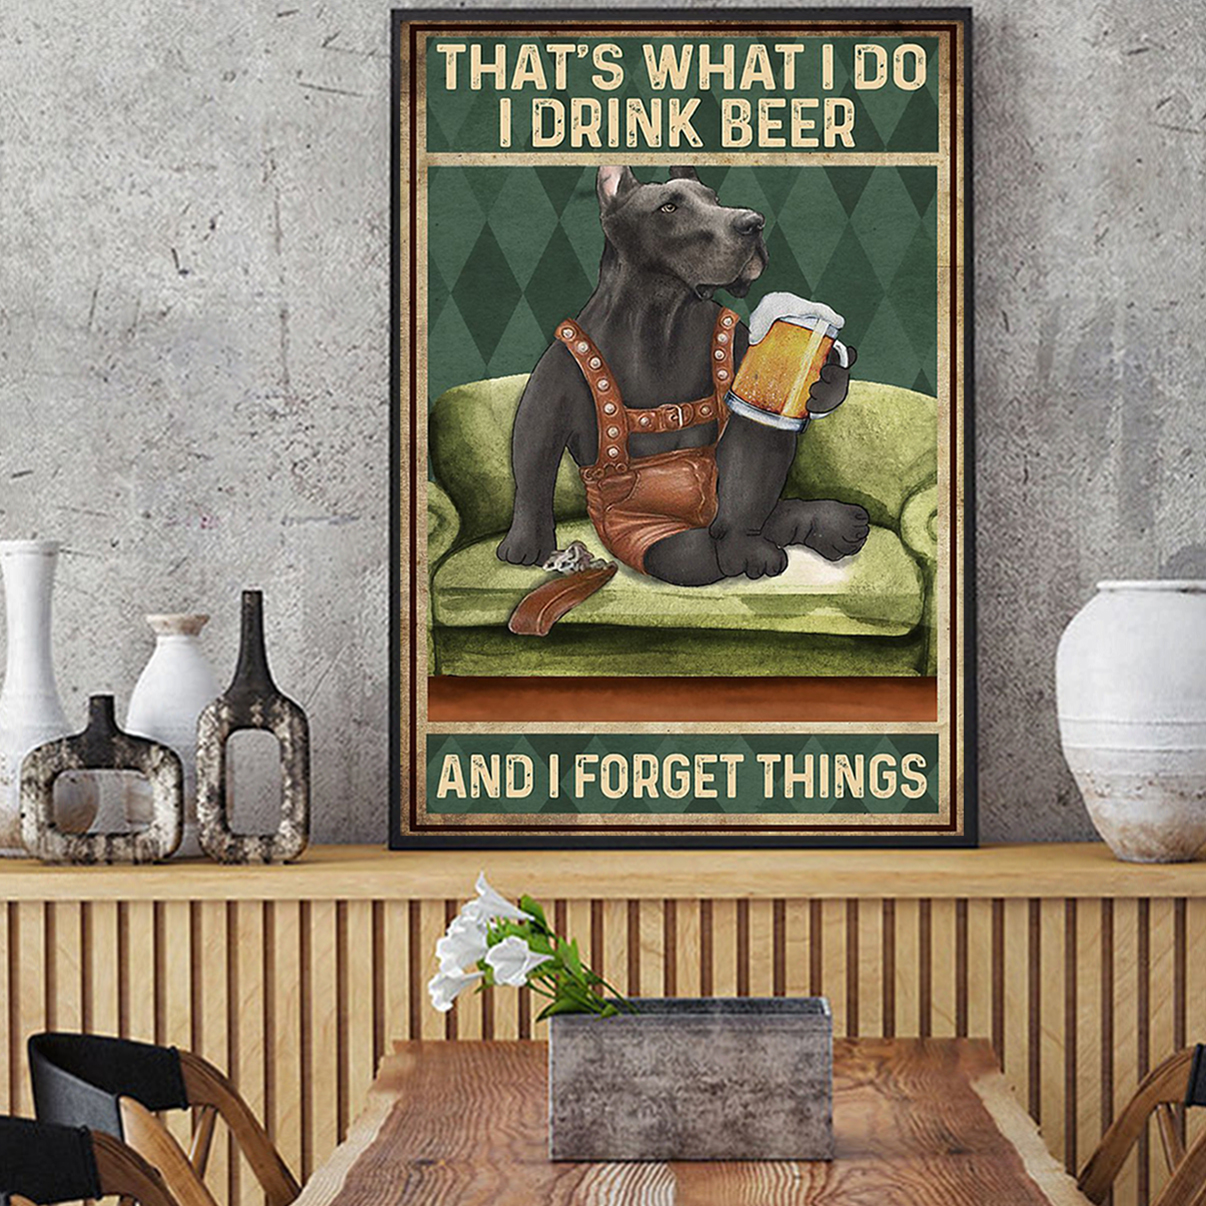 Great dane that's what I do I drink beer and I forget things poster A2